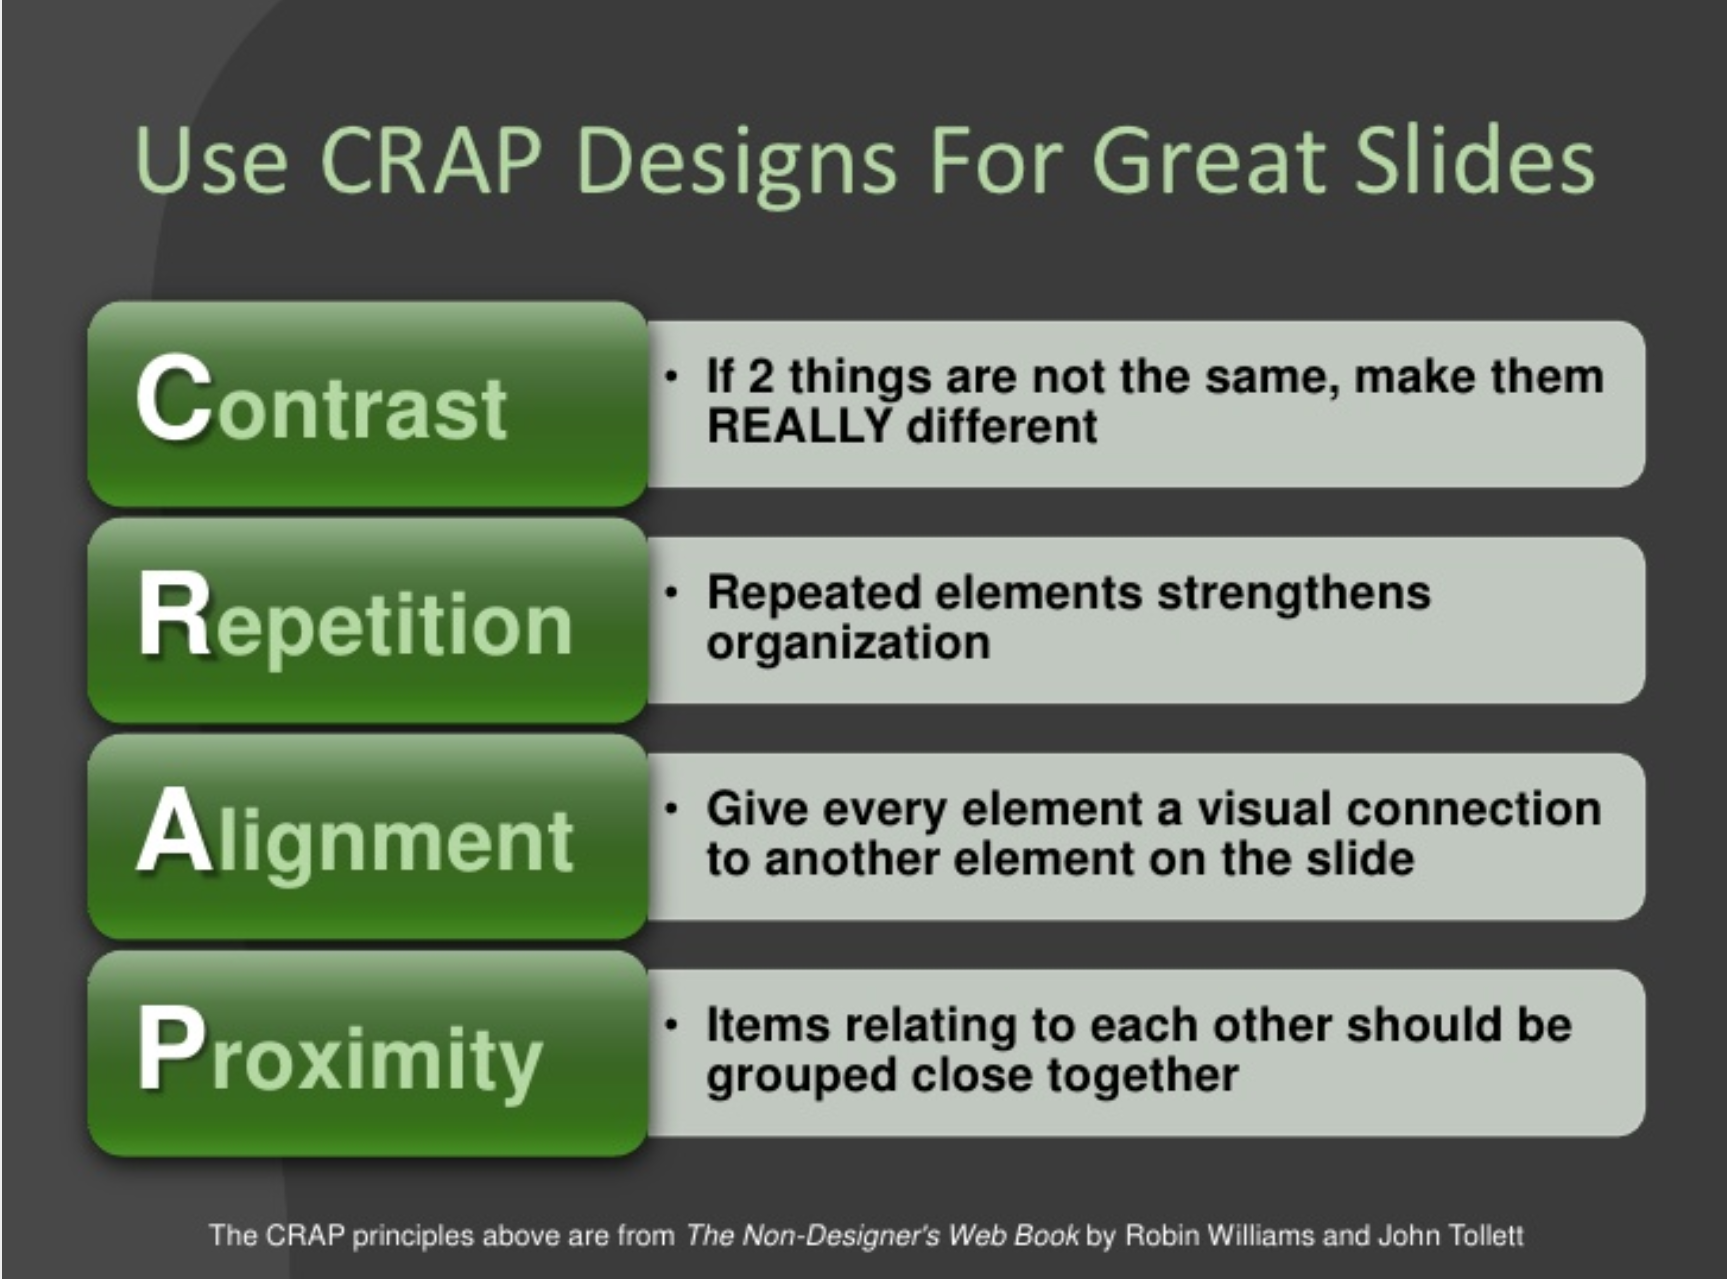 5 simple ways to add humor to your powerpoint slides